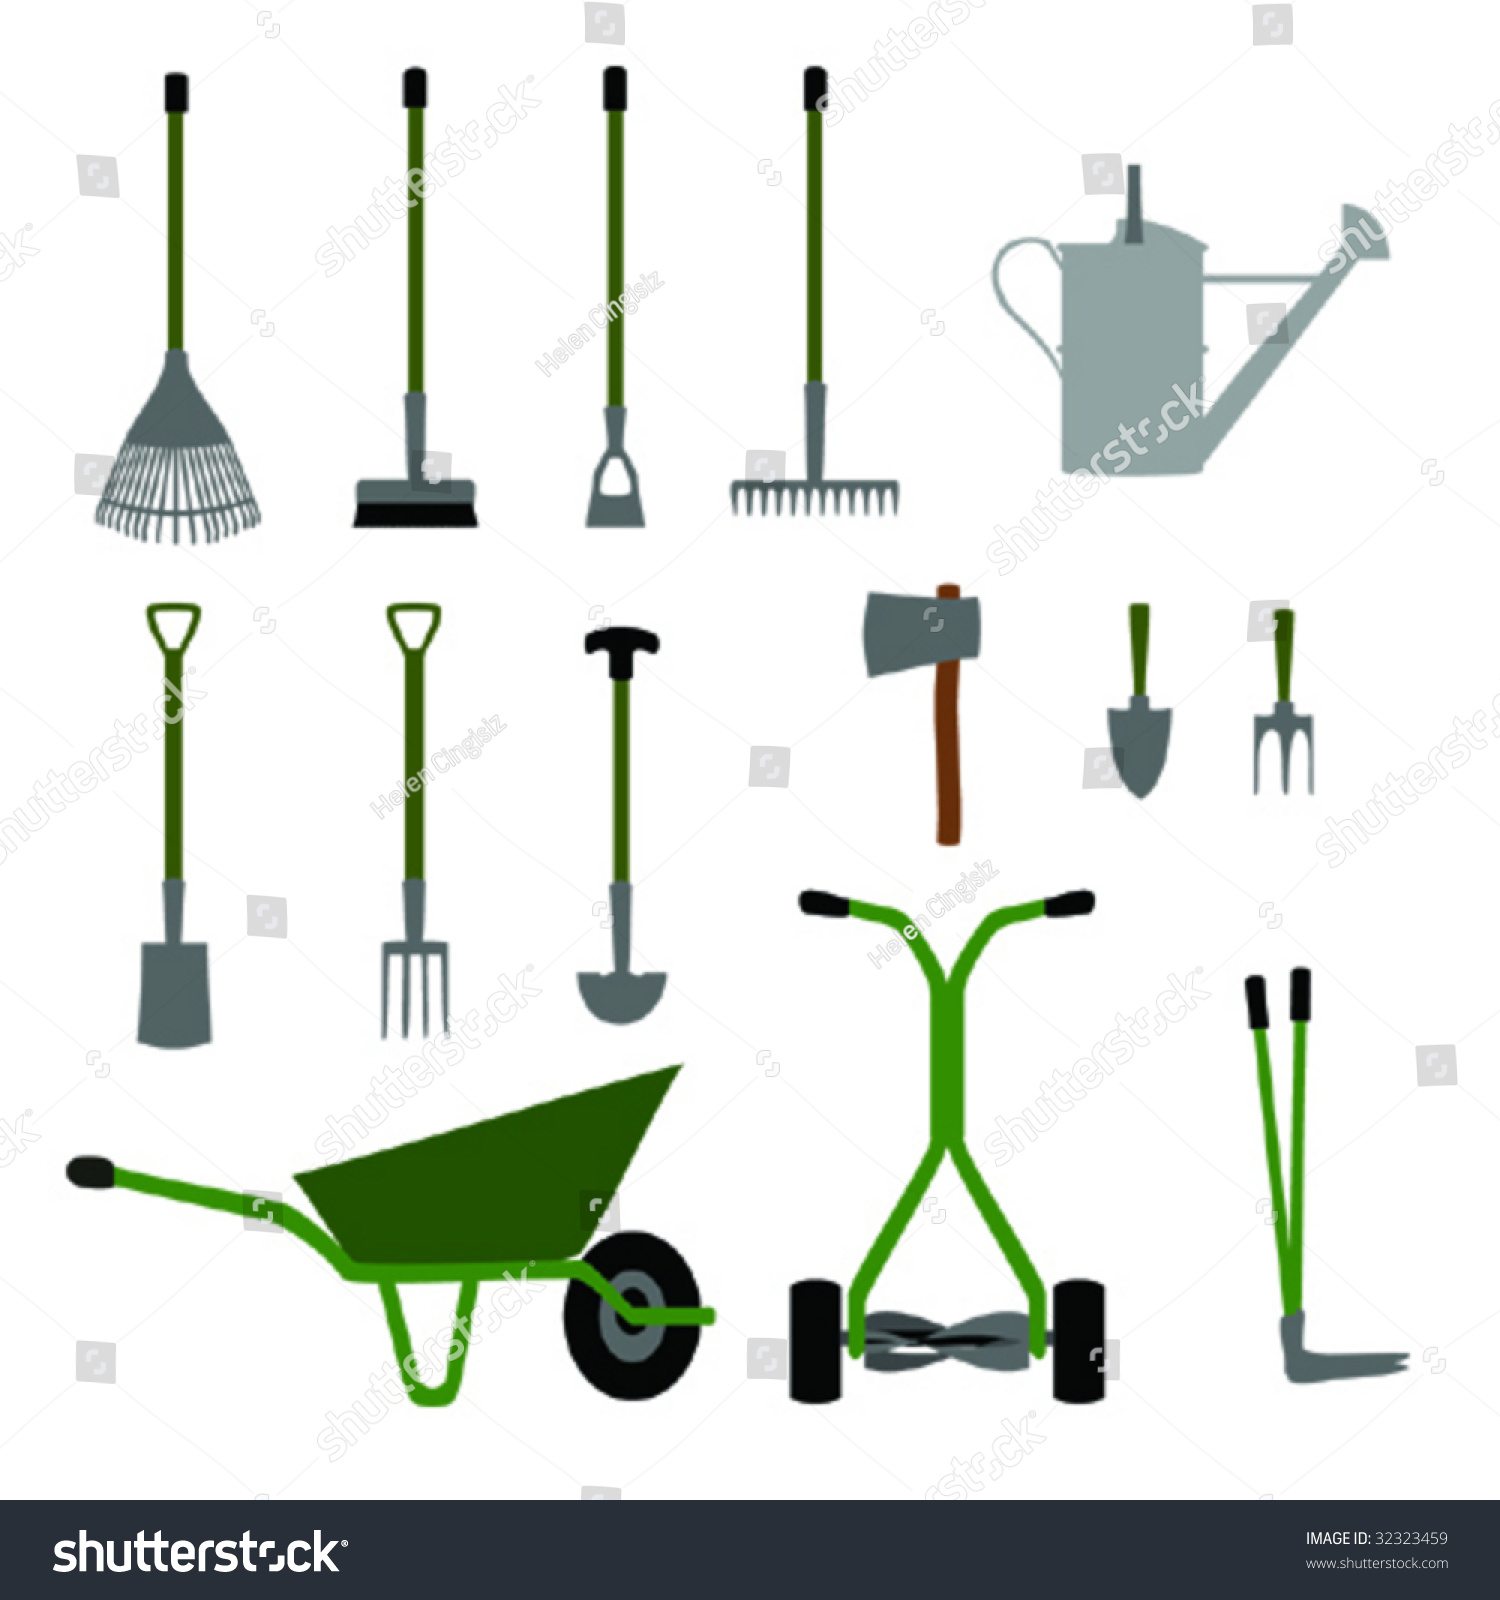 Gardening tools equipment set no1 stock vector 32323459 for Tools for backyard gardening